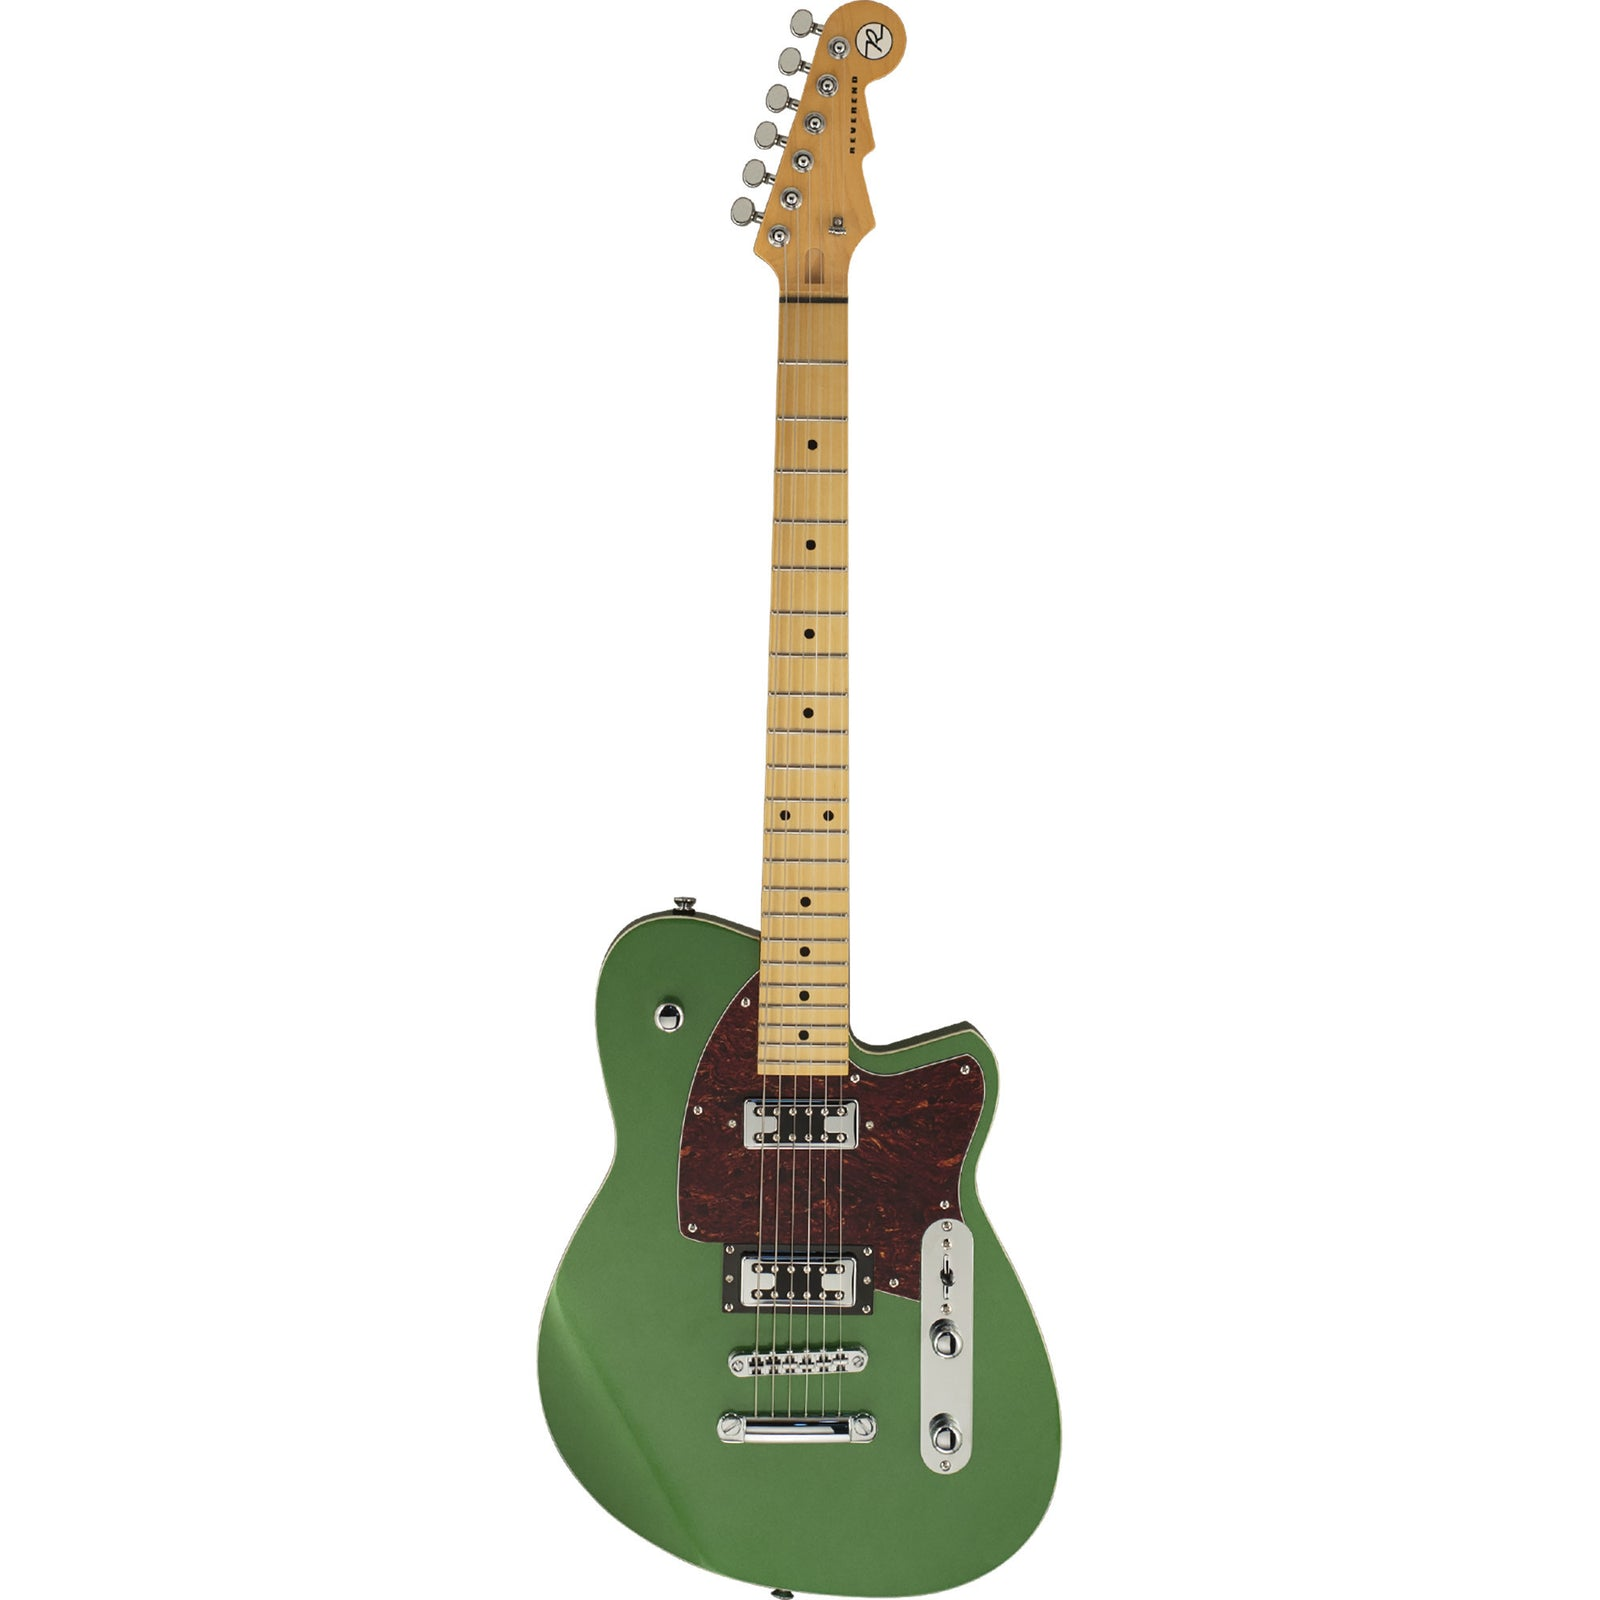 Reverend Flatroc Electric Guitar - Emerald Green